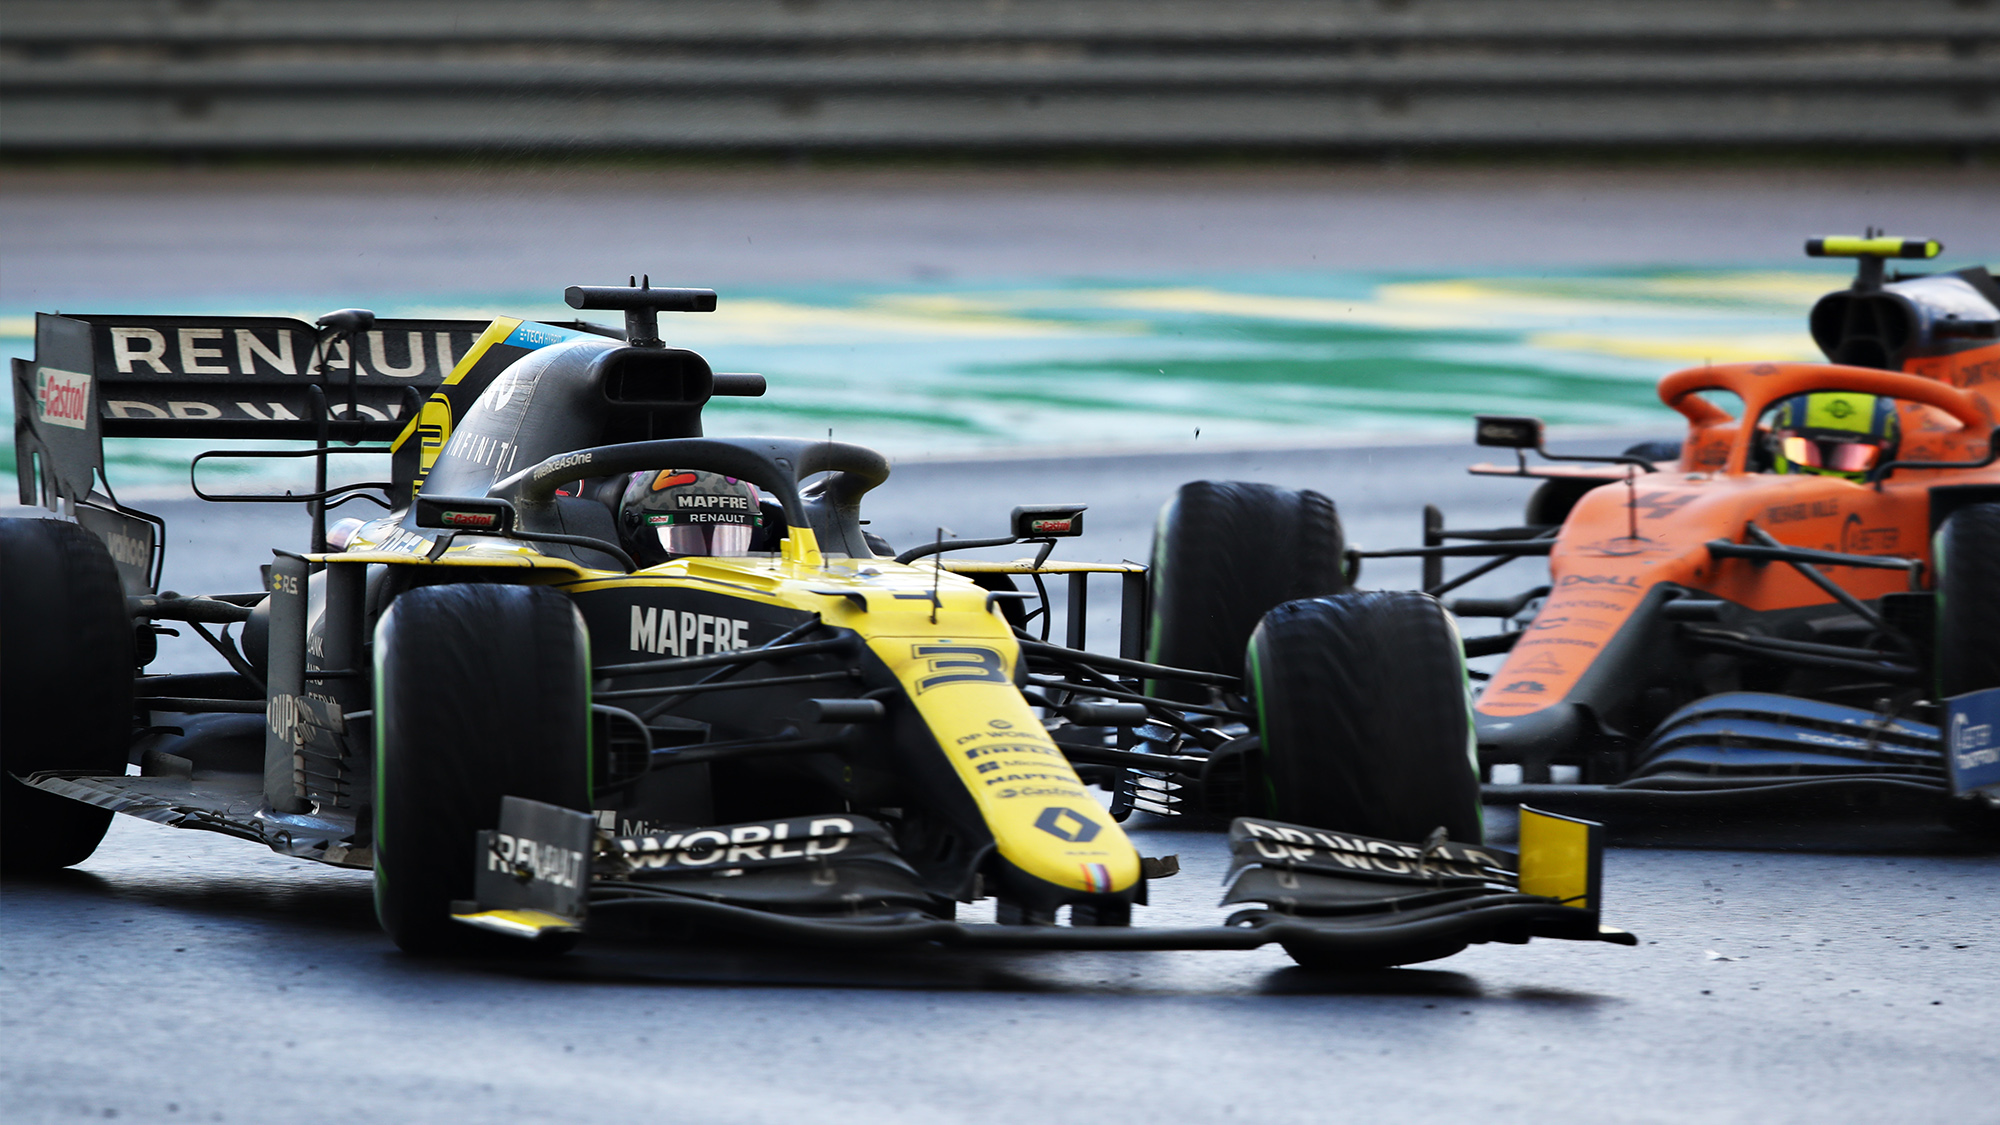 Daniel Ricciardo spins his Renault in front of Lando Norris' McLaren during the 2020 F1 Turkish Grand Prix at Istanbul Park